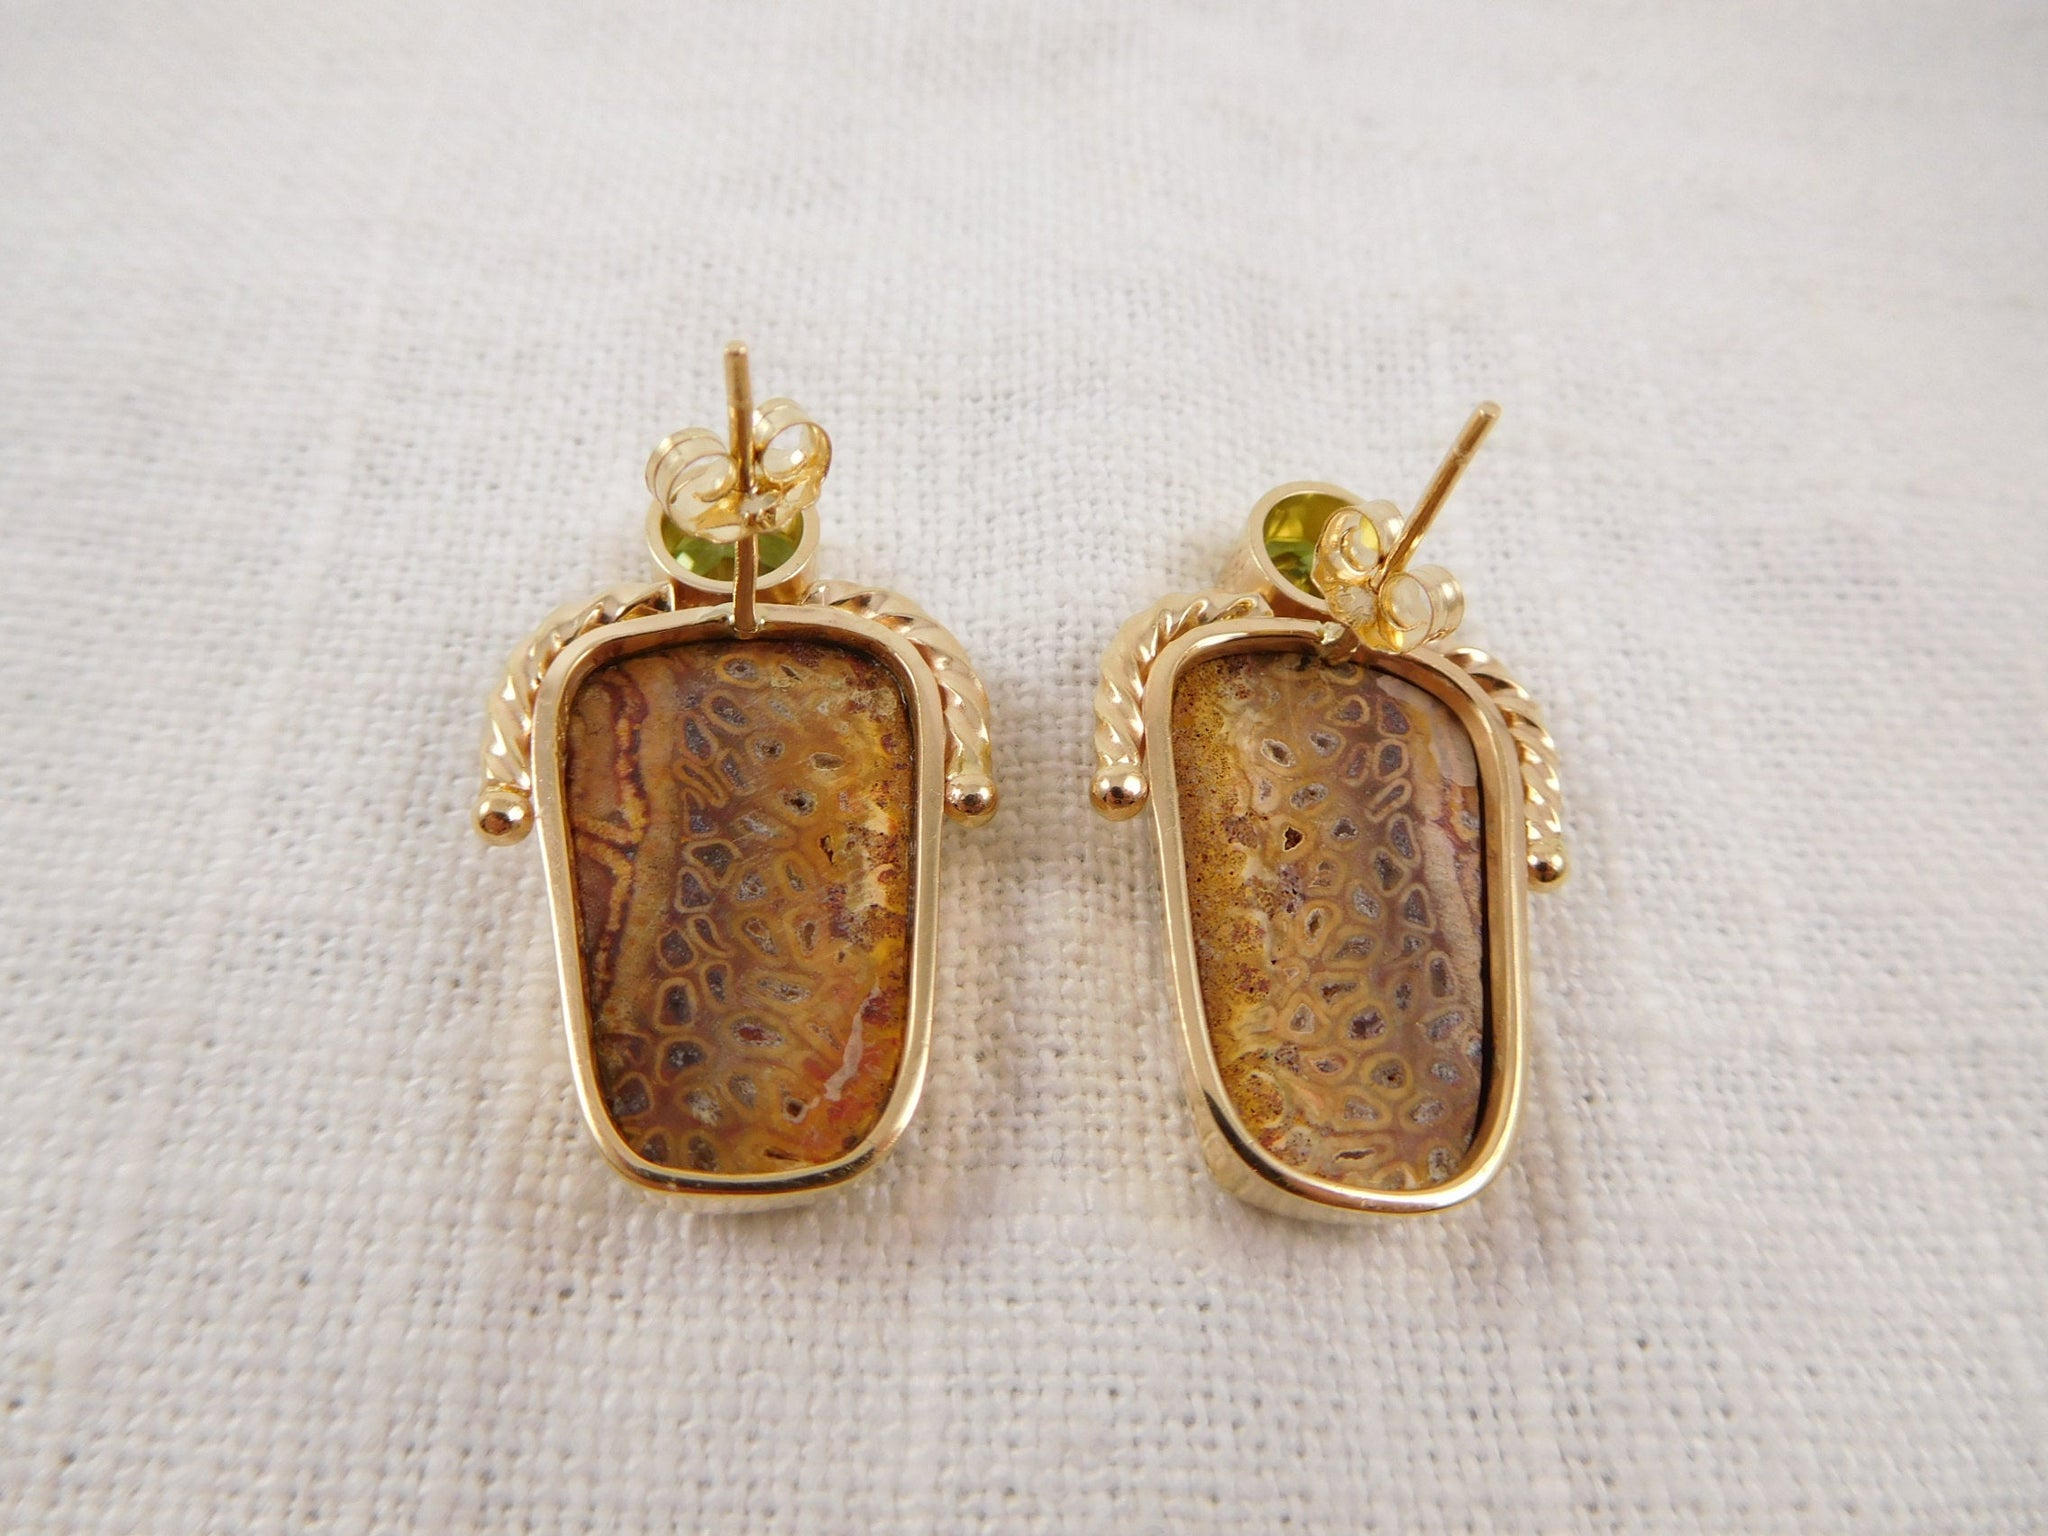 WW) Vintage Modernist Designer Earrings by Designer Nancy Karpel, 14K Gold Agate and Peridot